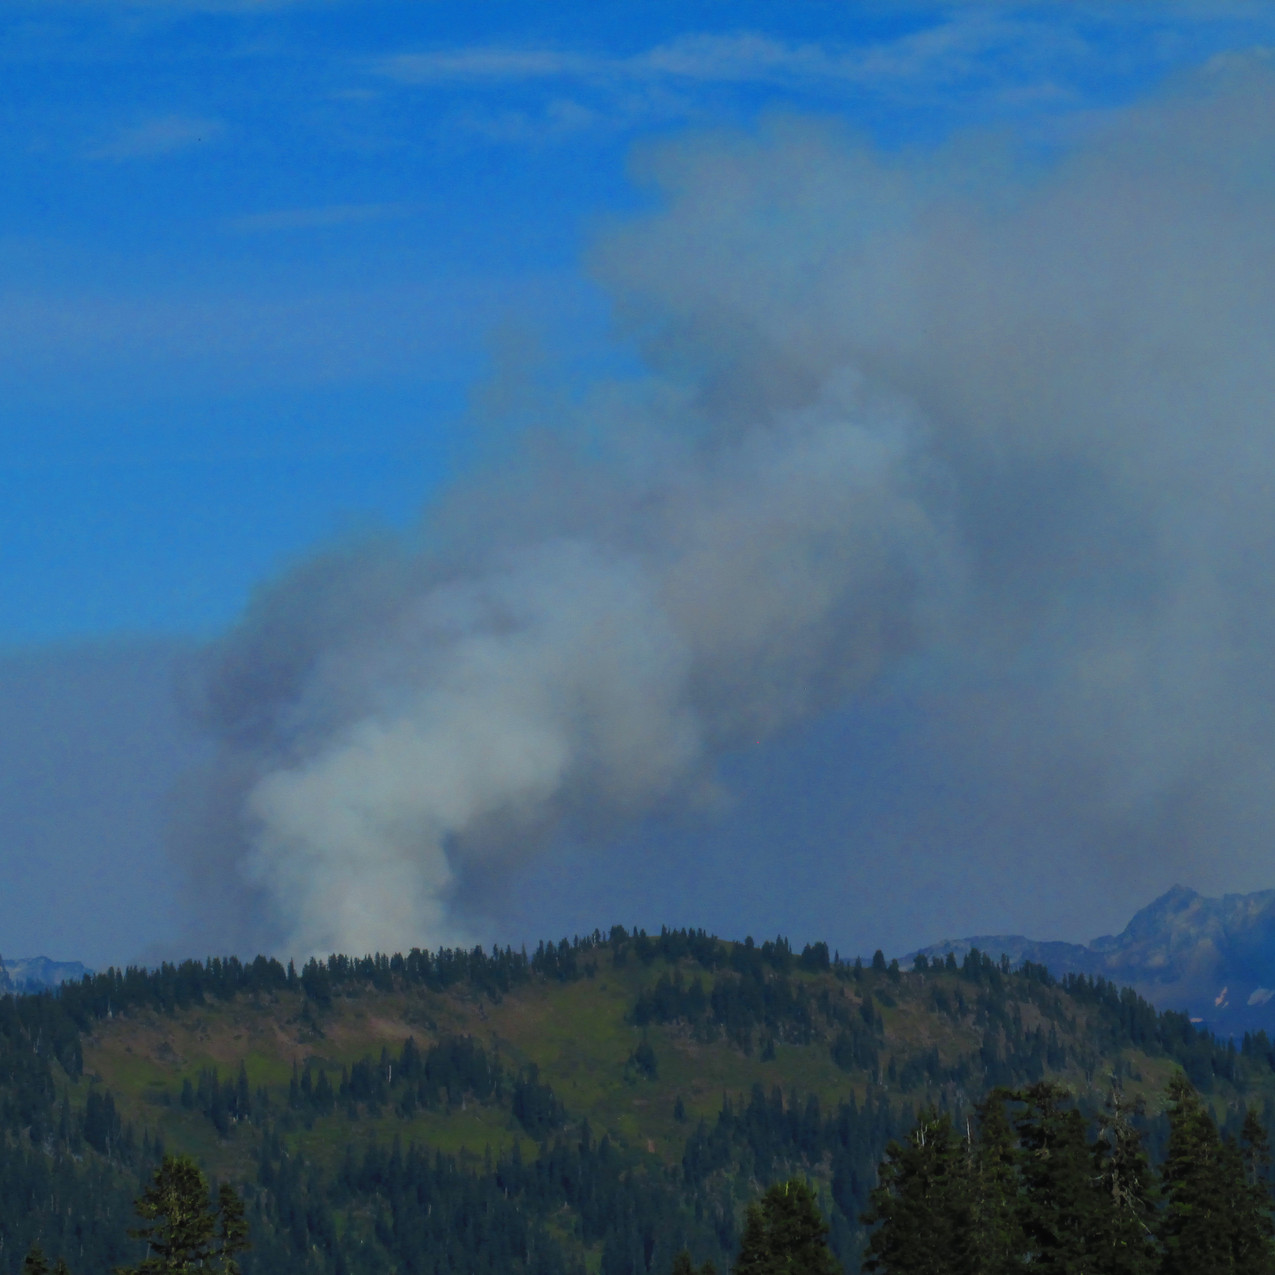 After a trail littered with fire closures, with a few from fires in 2016, seeing this smoke didn't exactly make me happy.